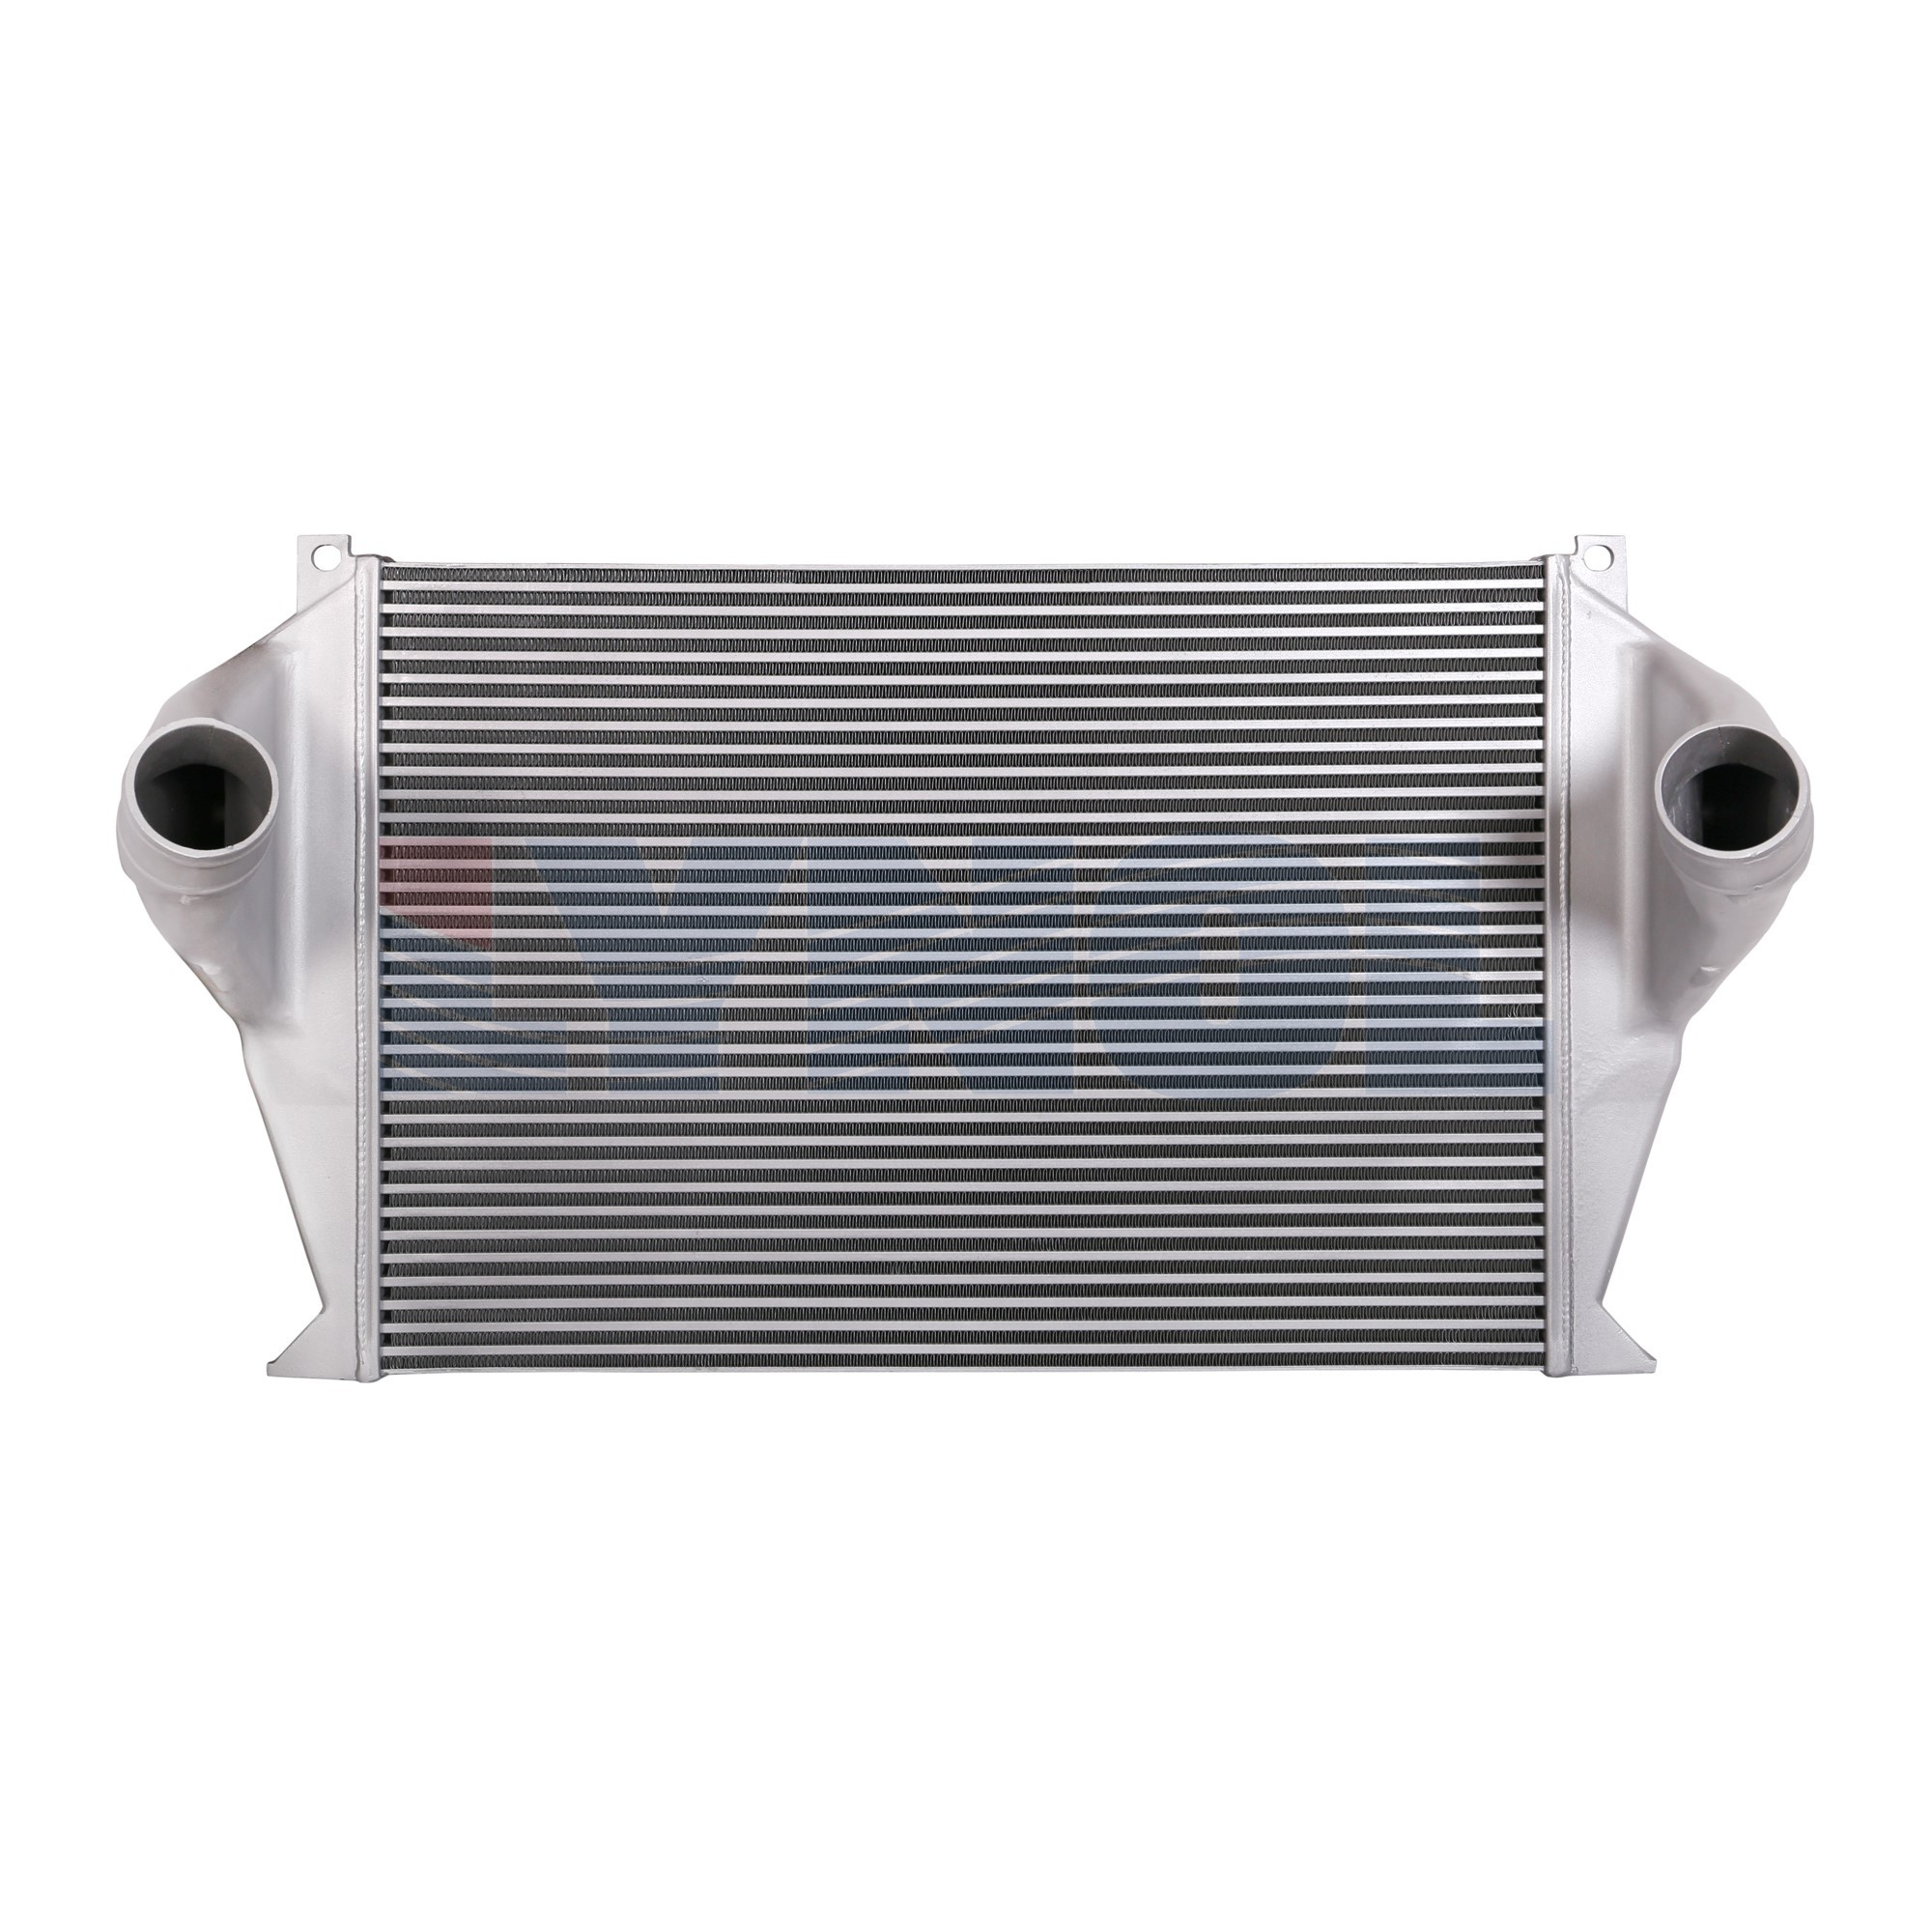 2408-005 - International / Navistar Charge Air Cooler